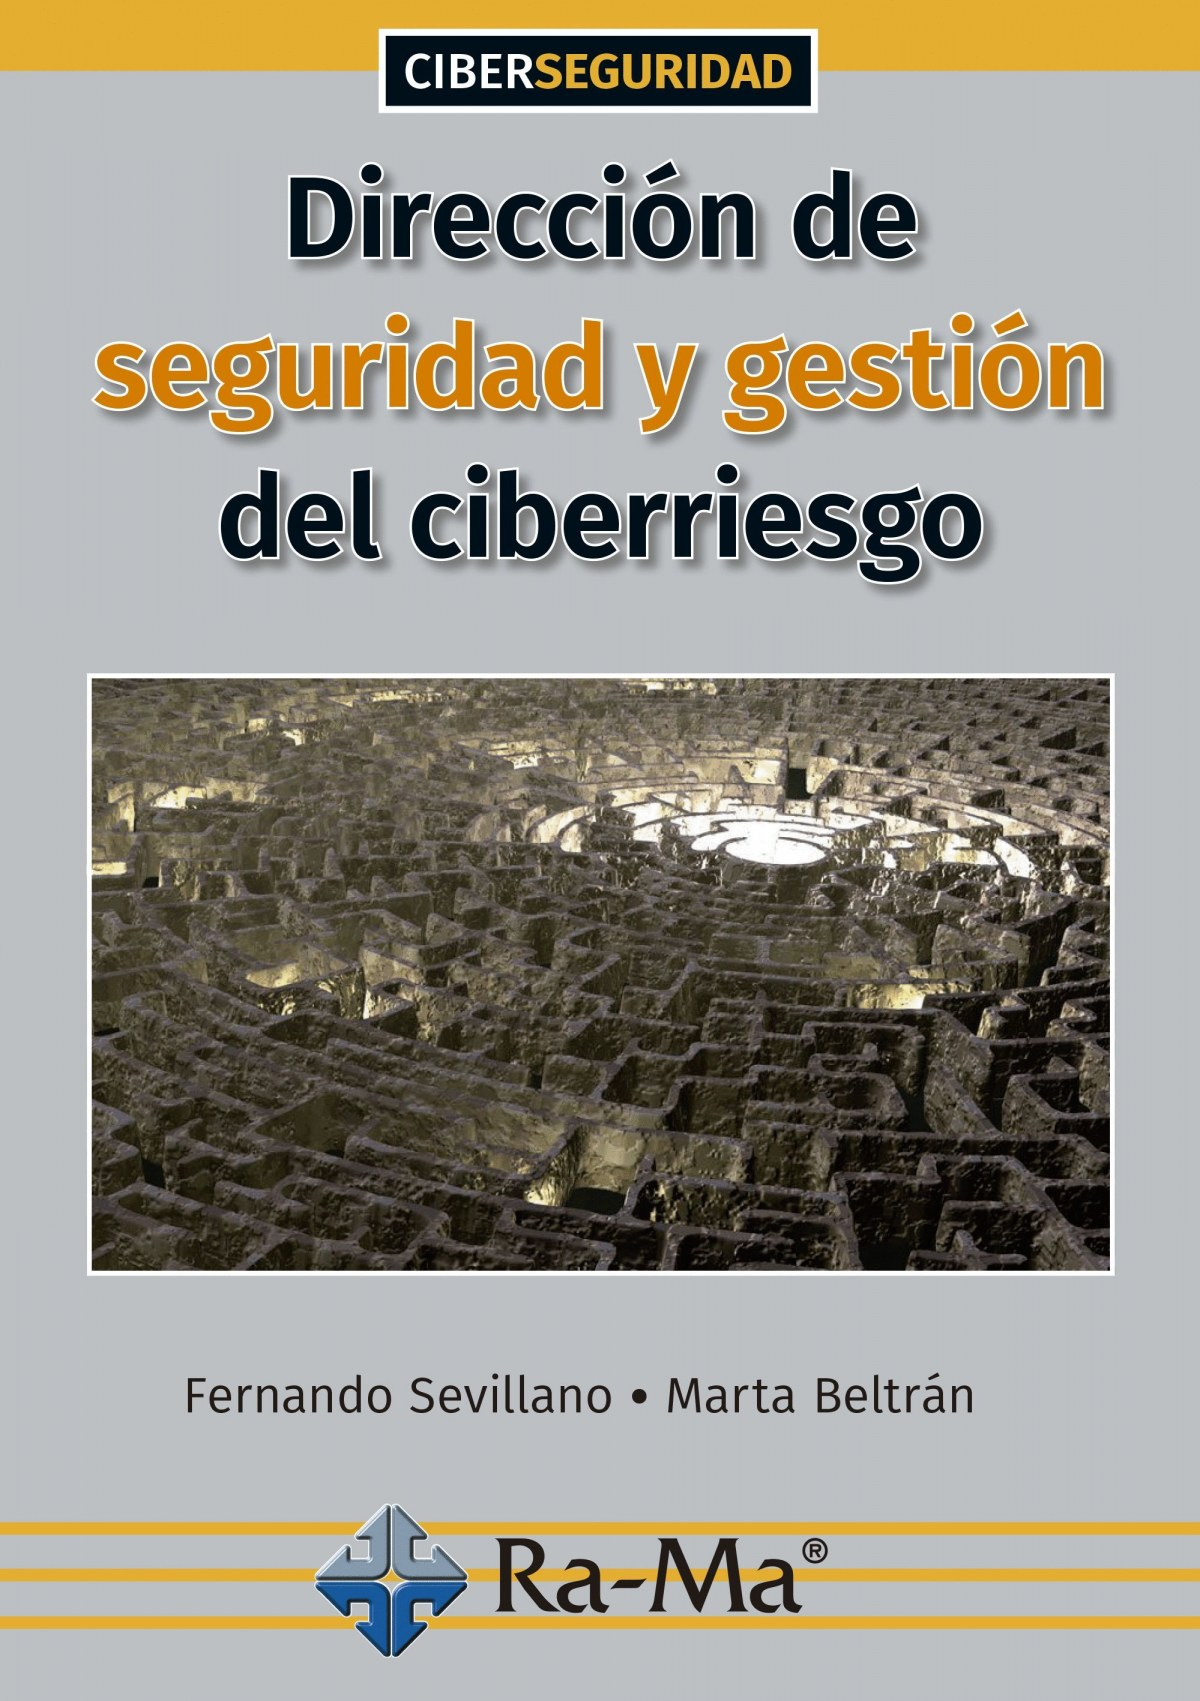 DIRECCION DE SEGURIDAD Y GESTION DEL CIBERRIESGO